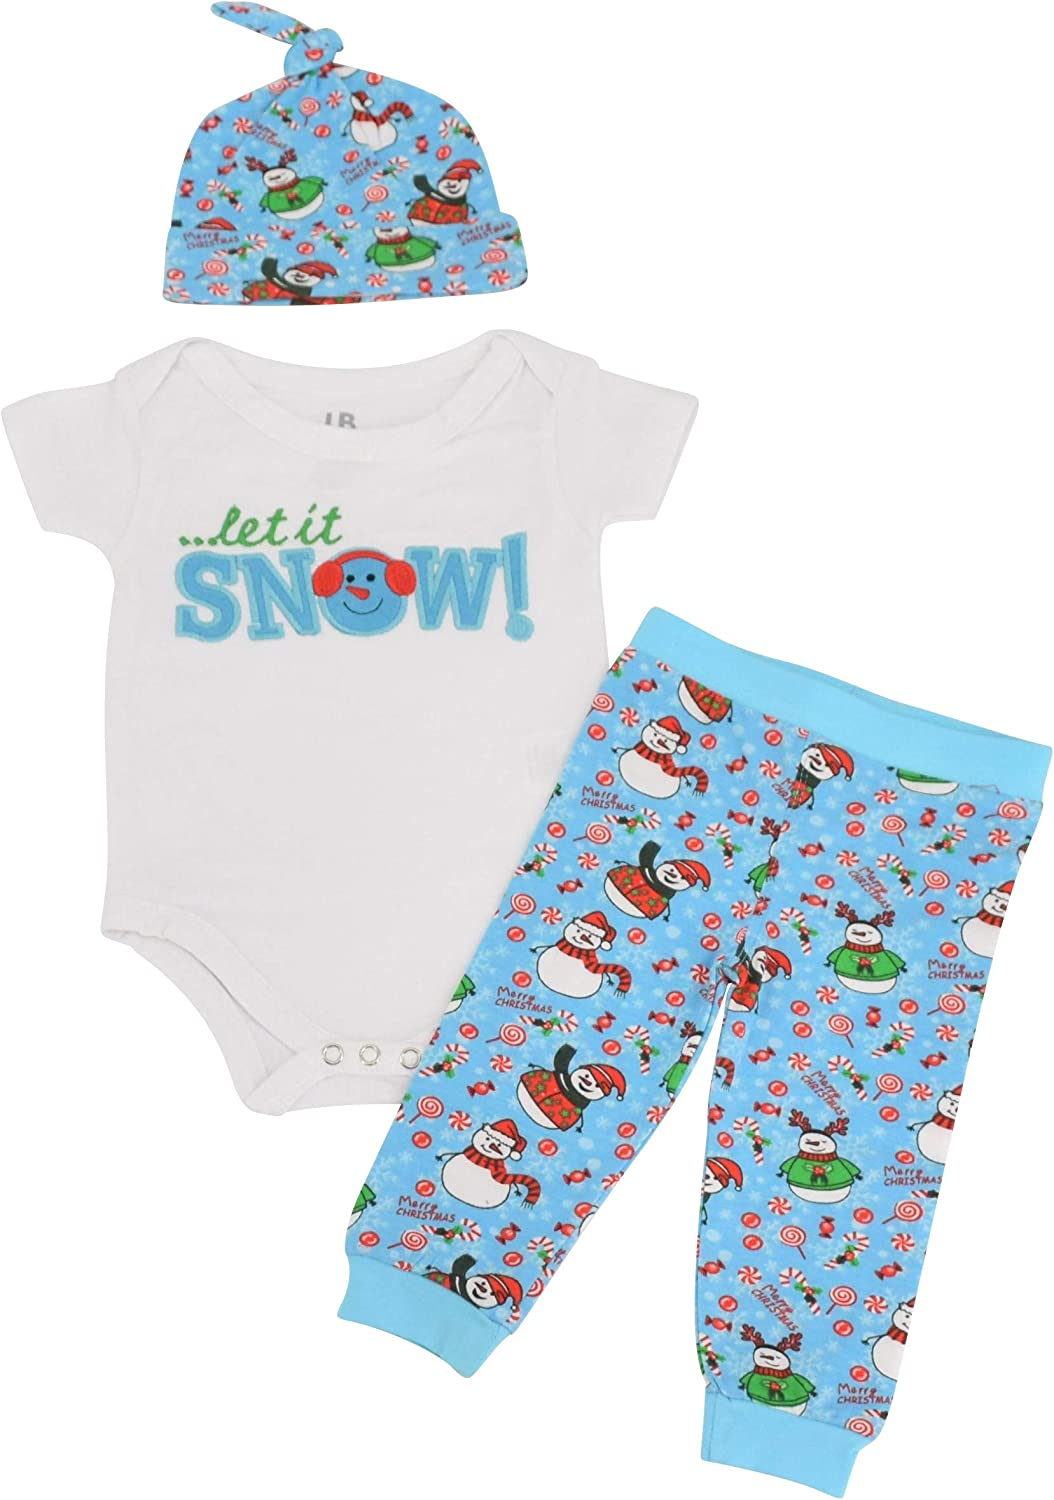 Unique Baby Unisex Christmas Outfit Pant Onesie Layette